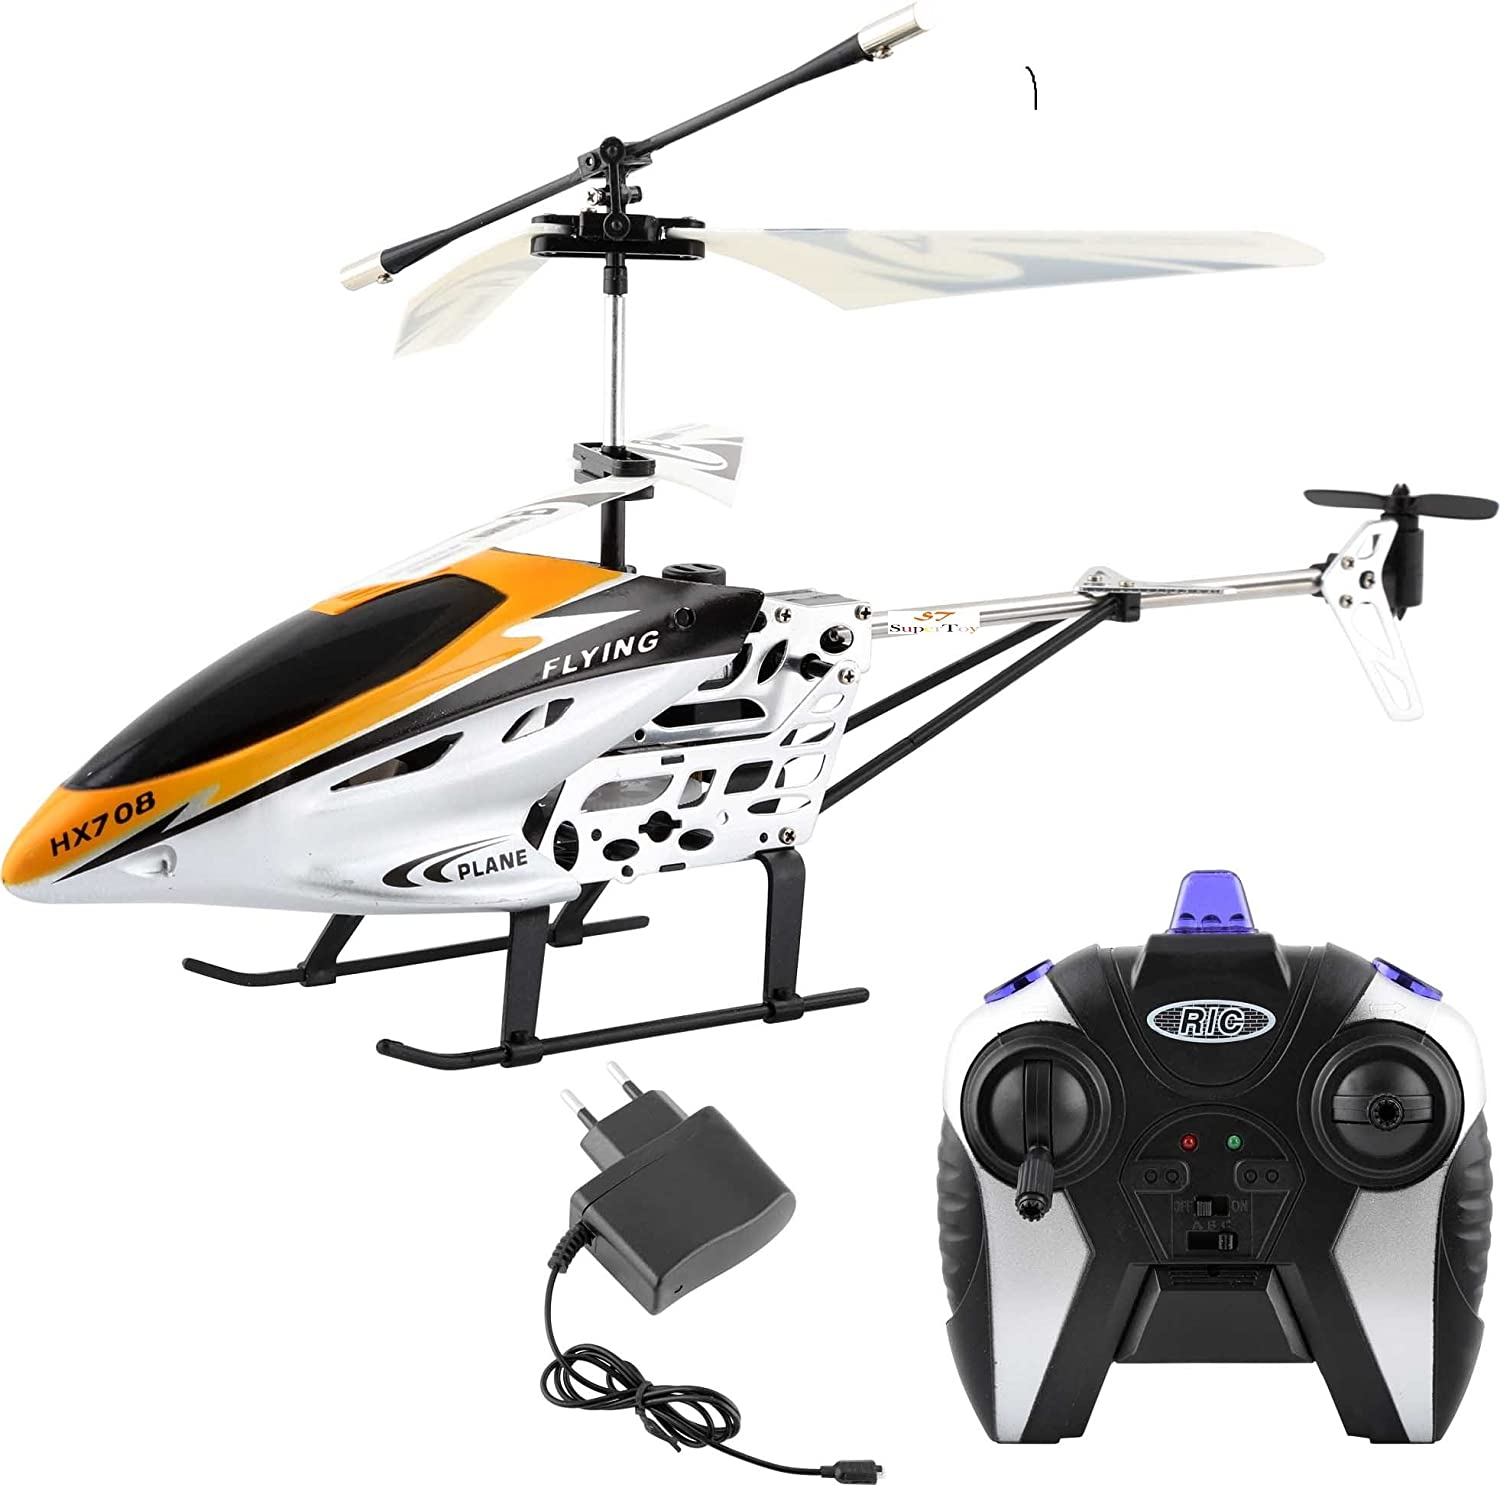 Buy Super Toy Wireless Remote Control Helicopter Toy For Kid Colour